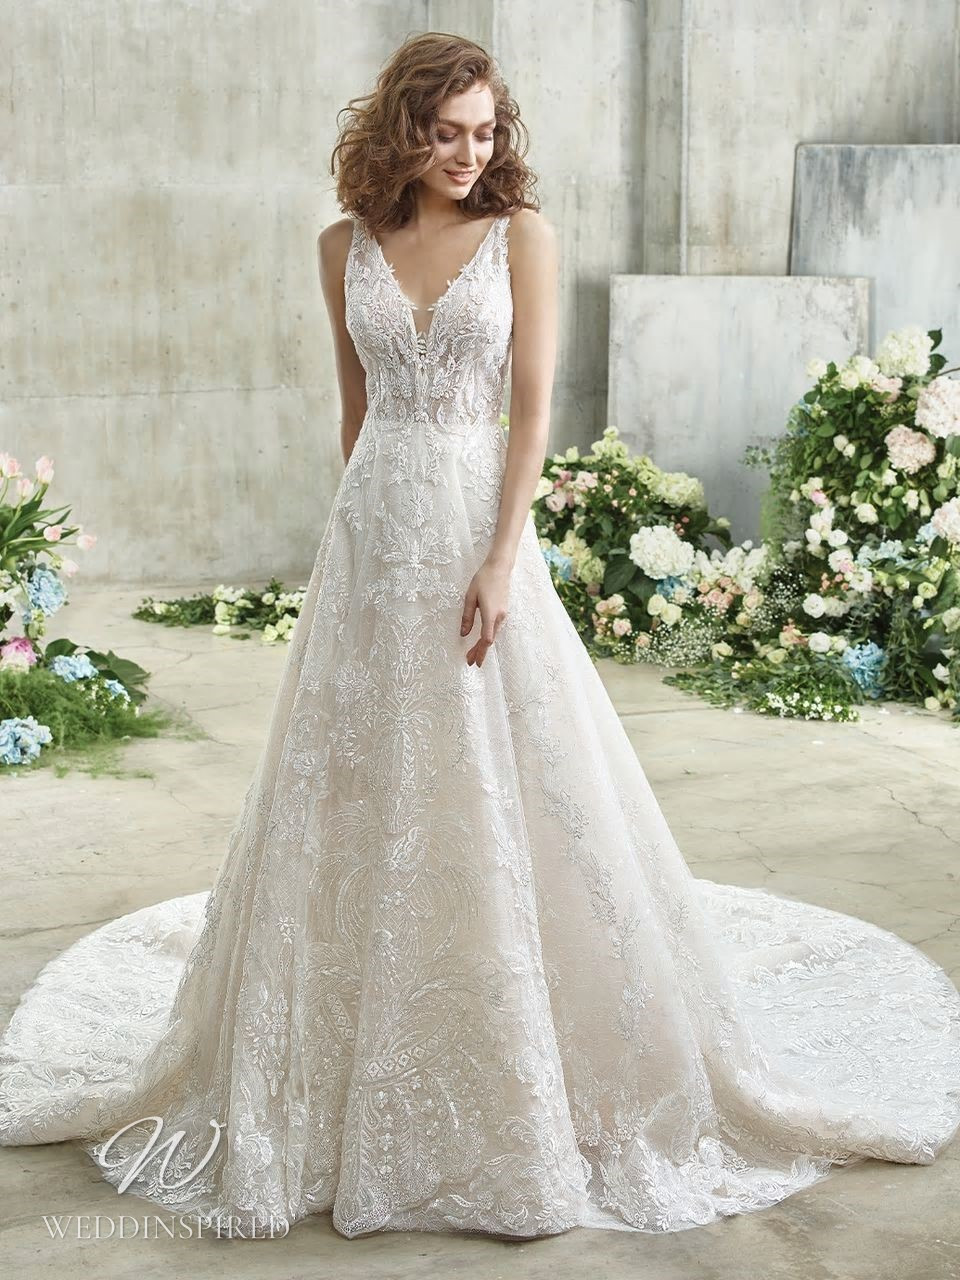 A Badgley Mischka lace A-line wedding dress with a v neckline and a train